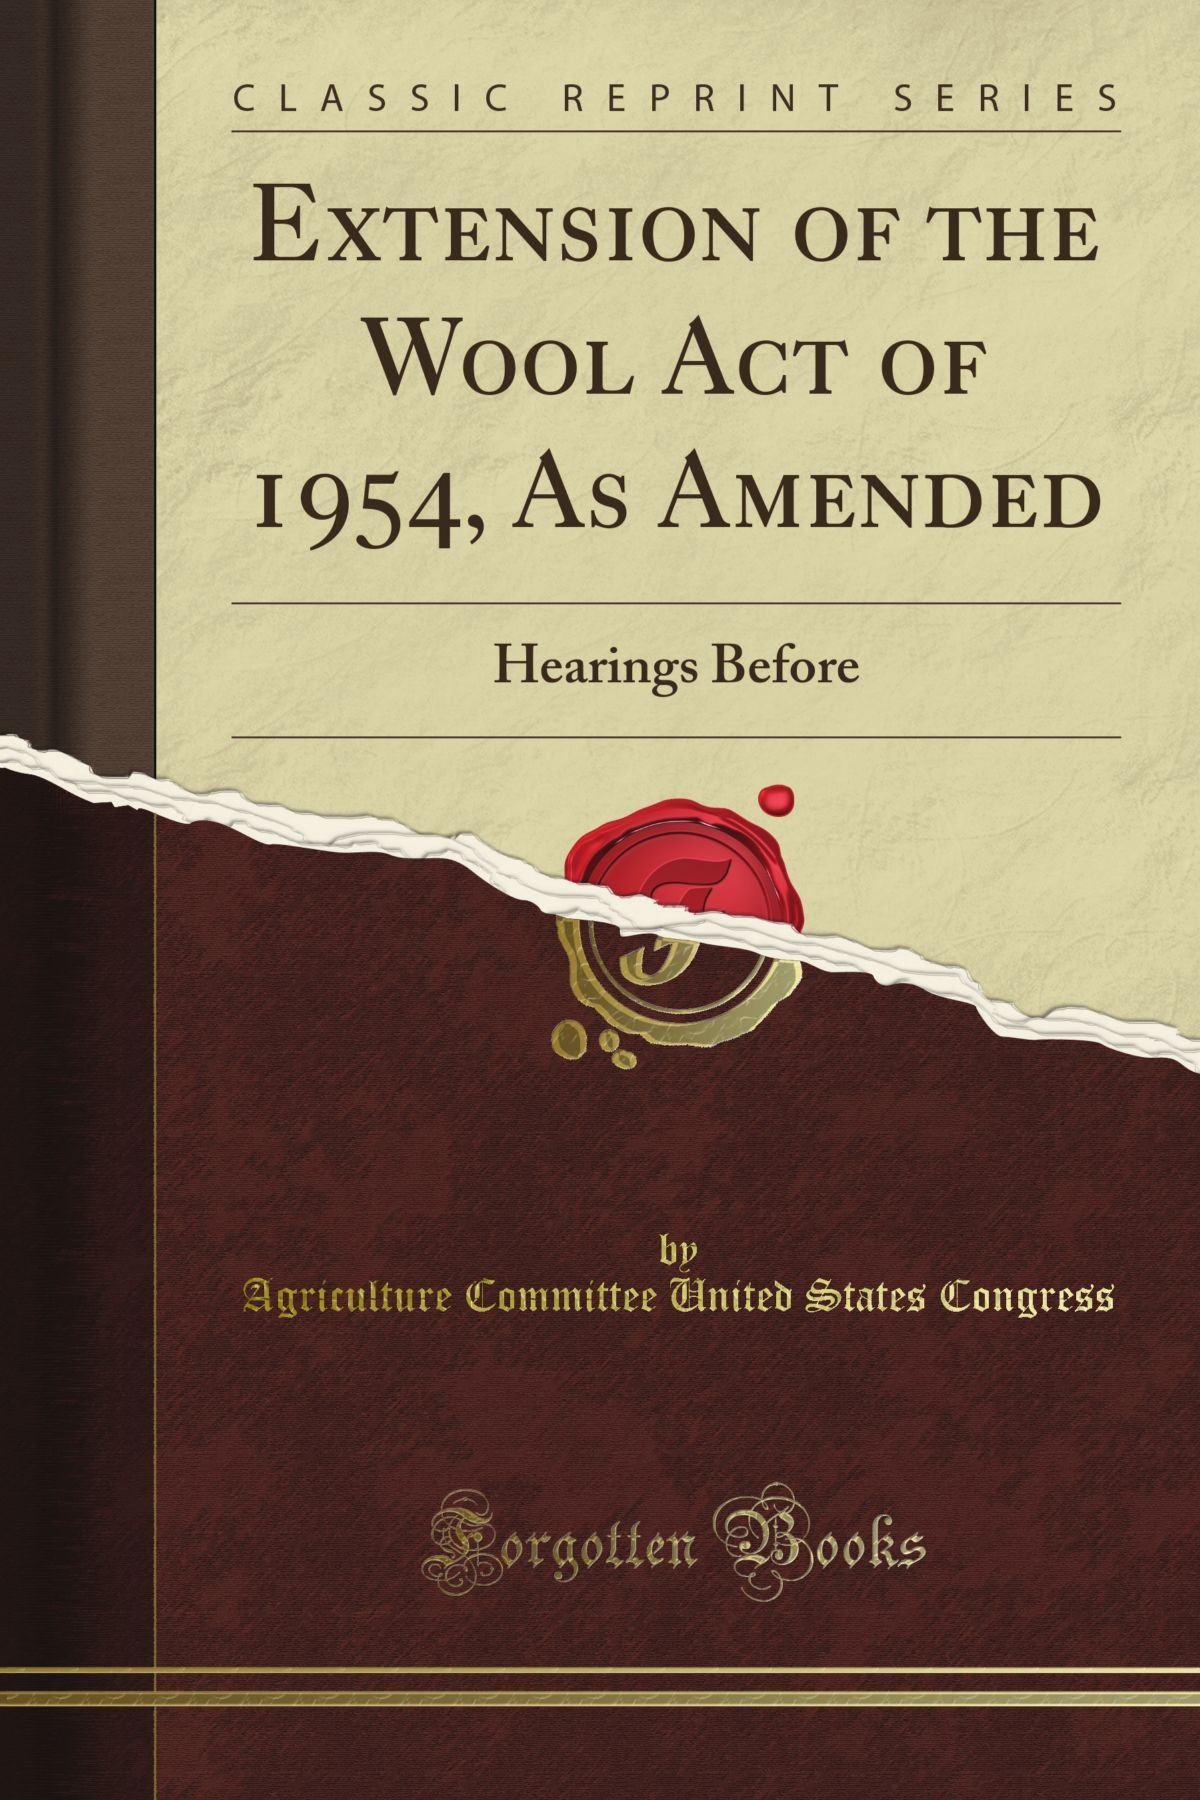 Extension of the Wool Act of 1954, As Amended: Hearings Before (Classic Reprint) PDF